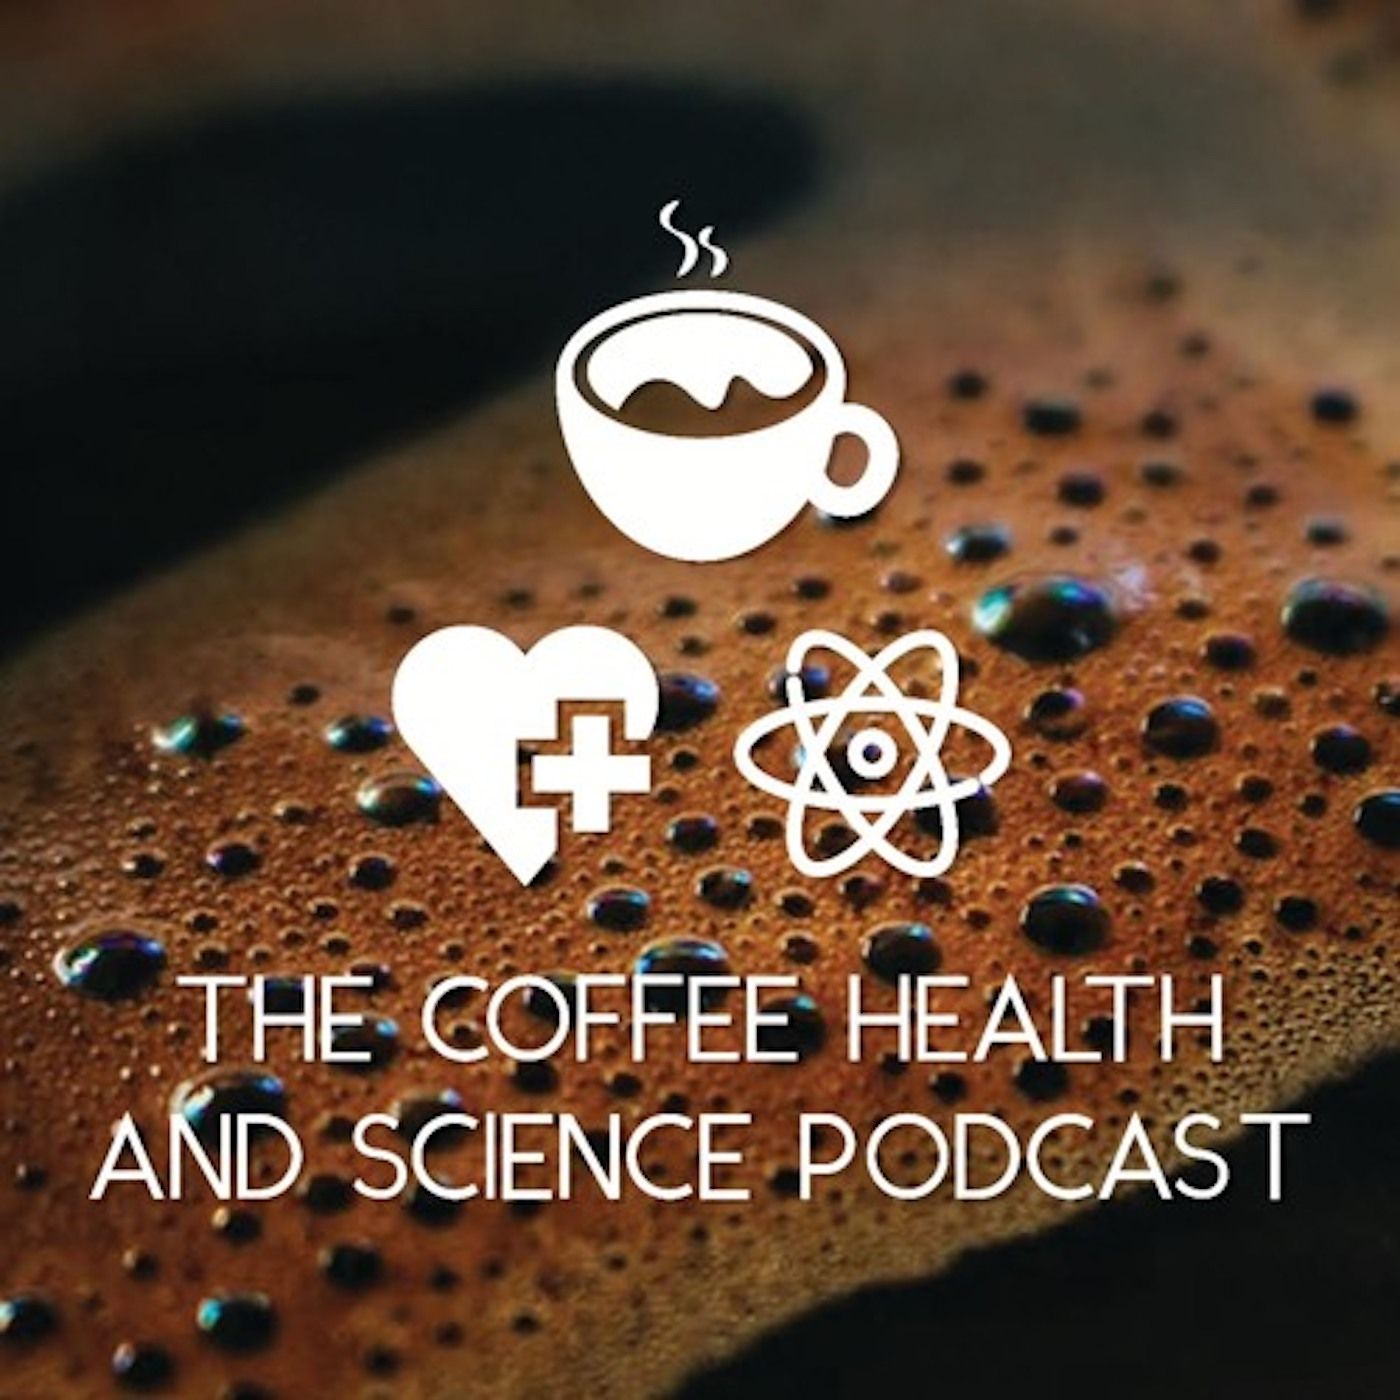 Anti-Oxidants, Anti-Inflammation, Phenols, Chlorogenic Acids in Coffee, with Dr. Coffee